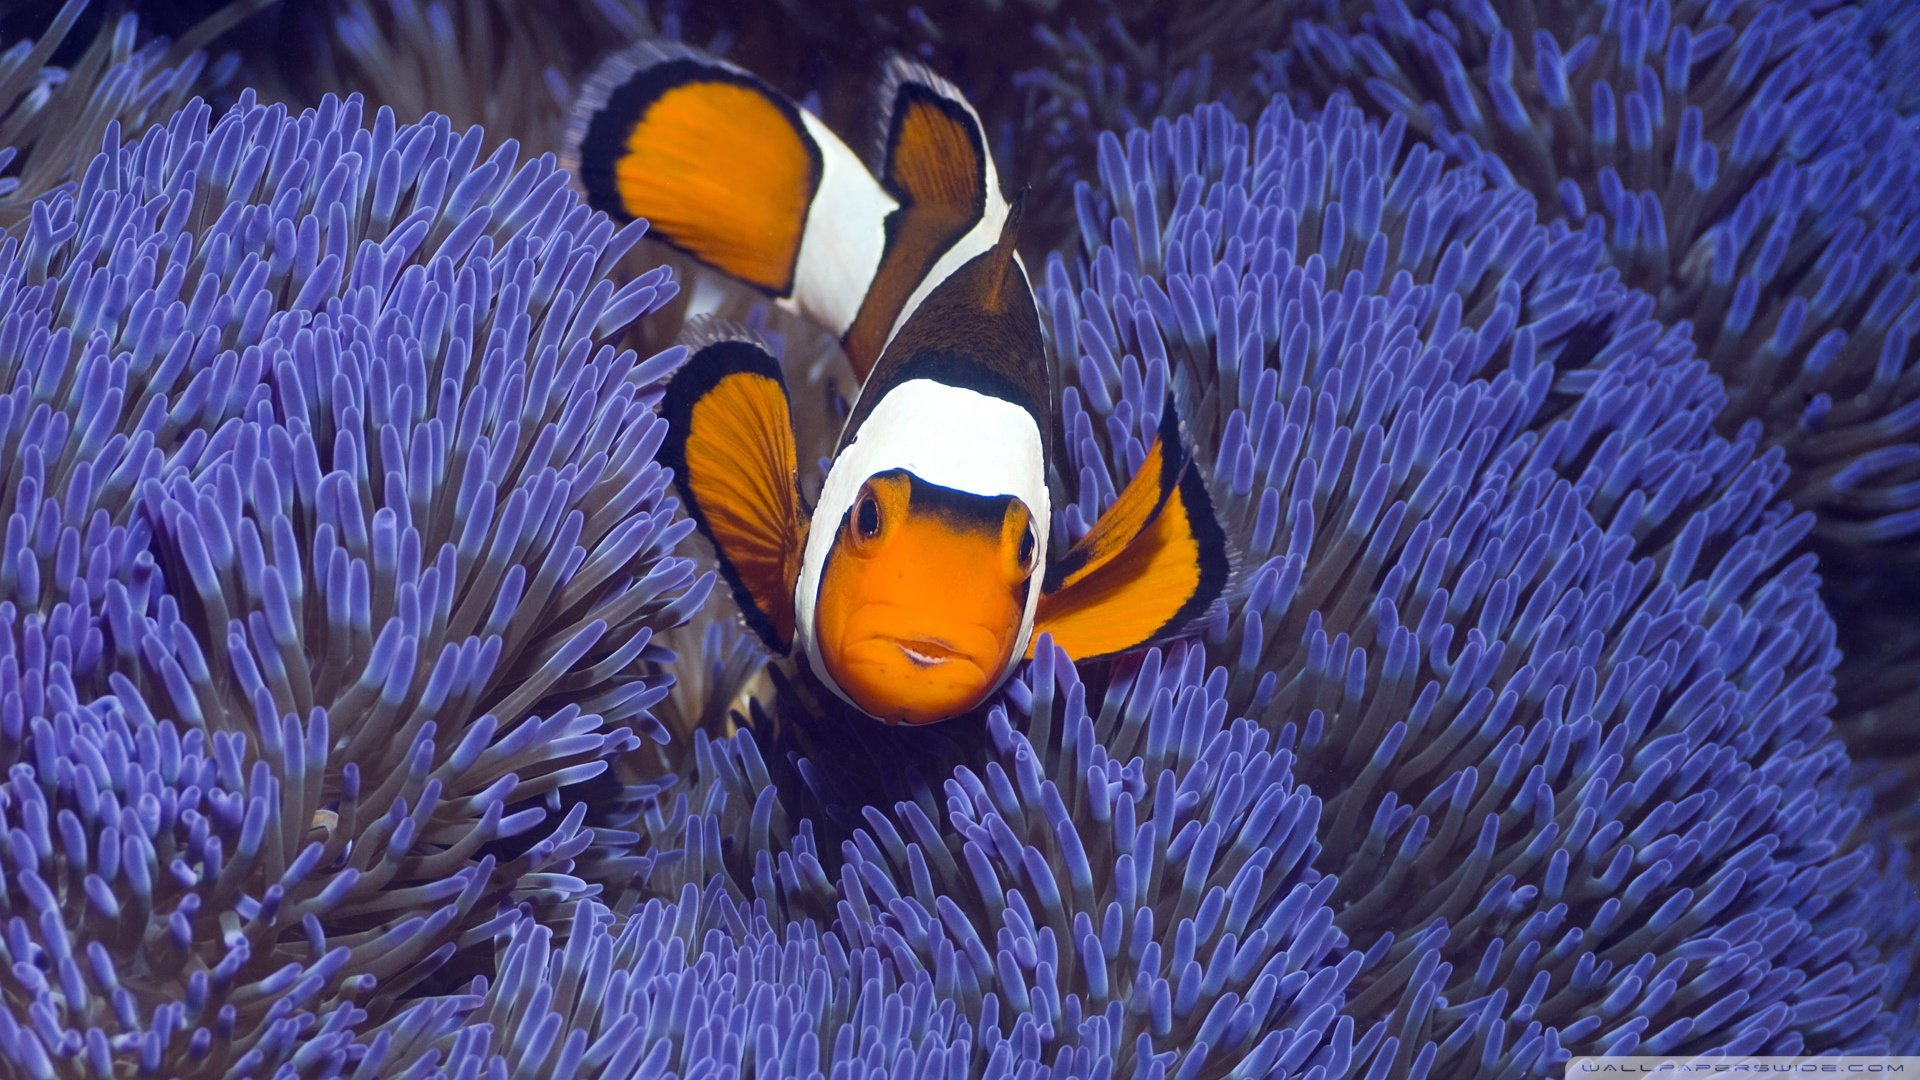 Download hd 1920x1080 Clownfish computer wallpaper ID:53248 for free